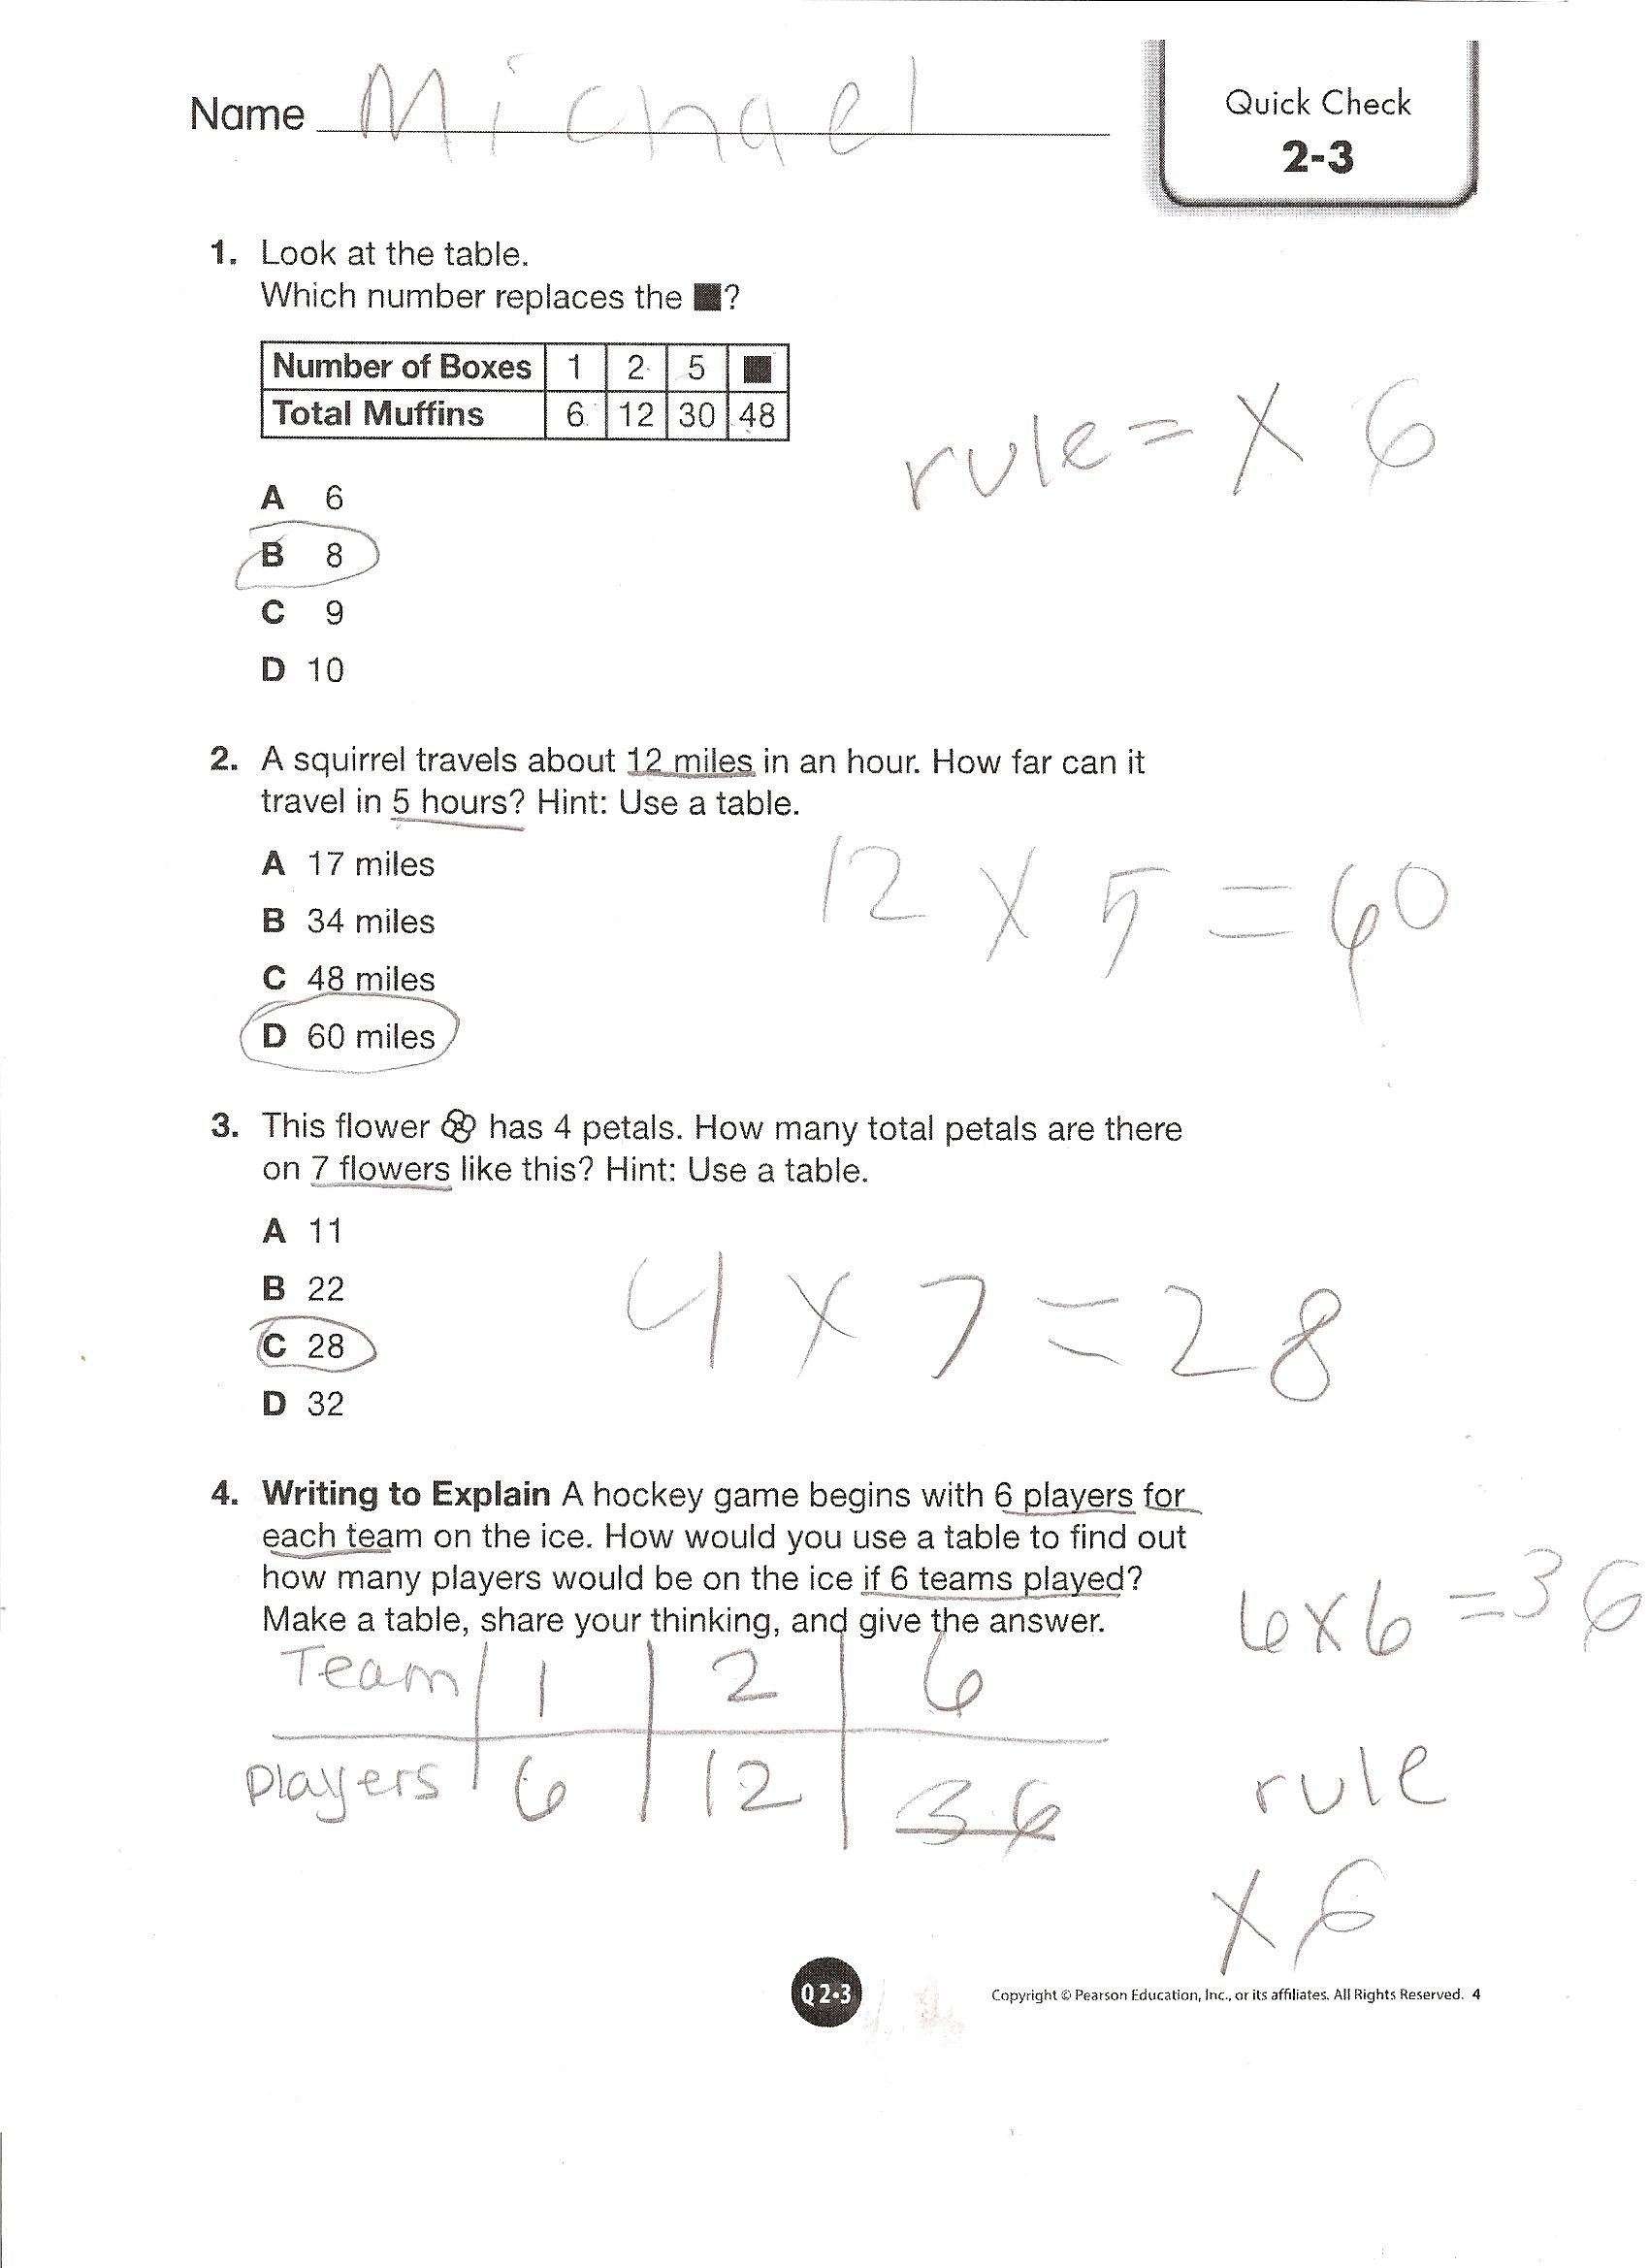 Envision Math Grade 4 Topic 2-3 Quick Check | Envision 4th ...